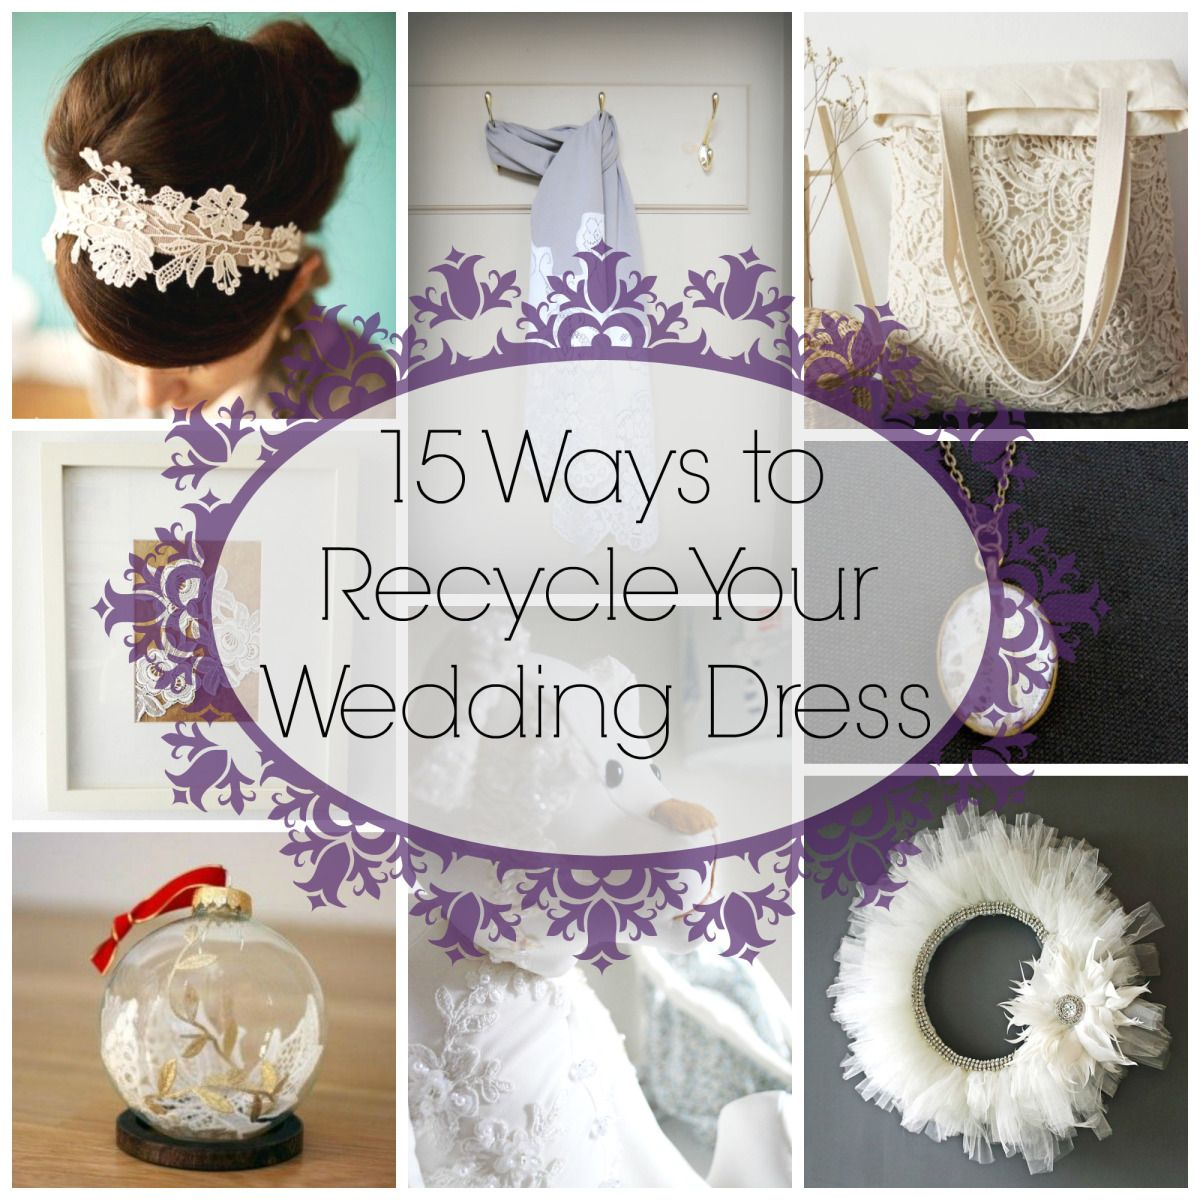 15 Ways To Recycle Your Wedding Dress In 2020 Upcycled Wedding Upcycled Wedding Dress Wedding Dress Preservation